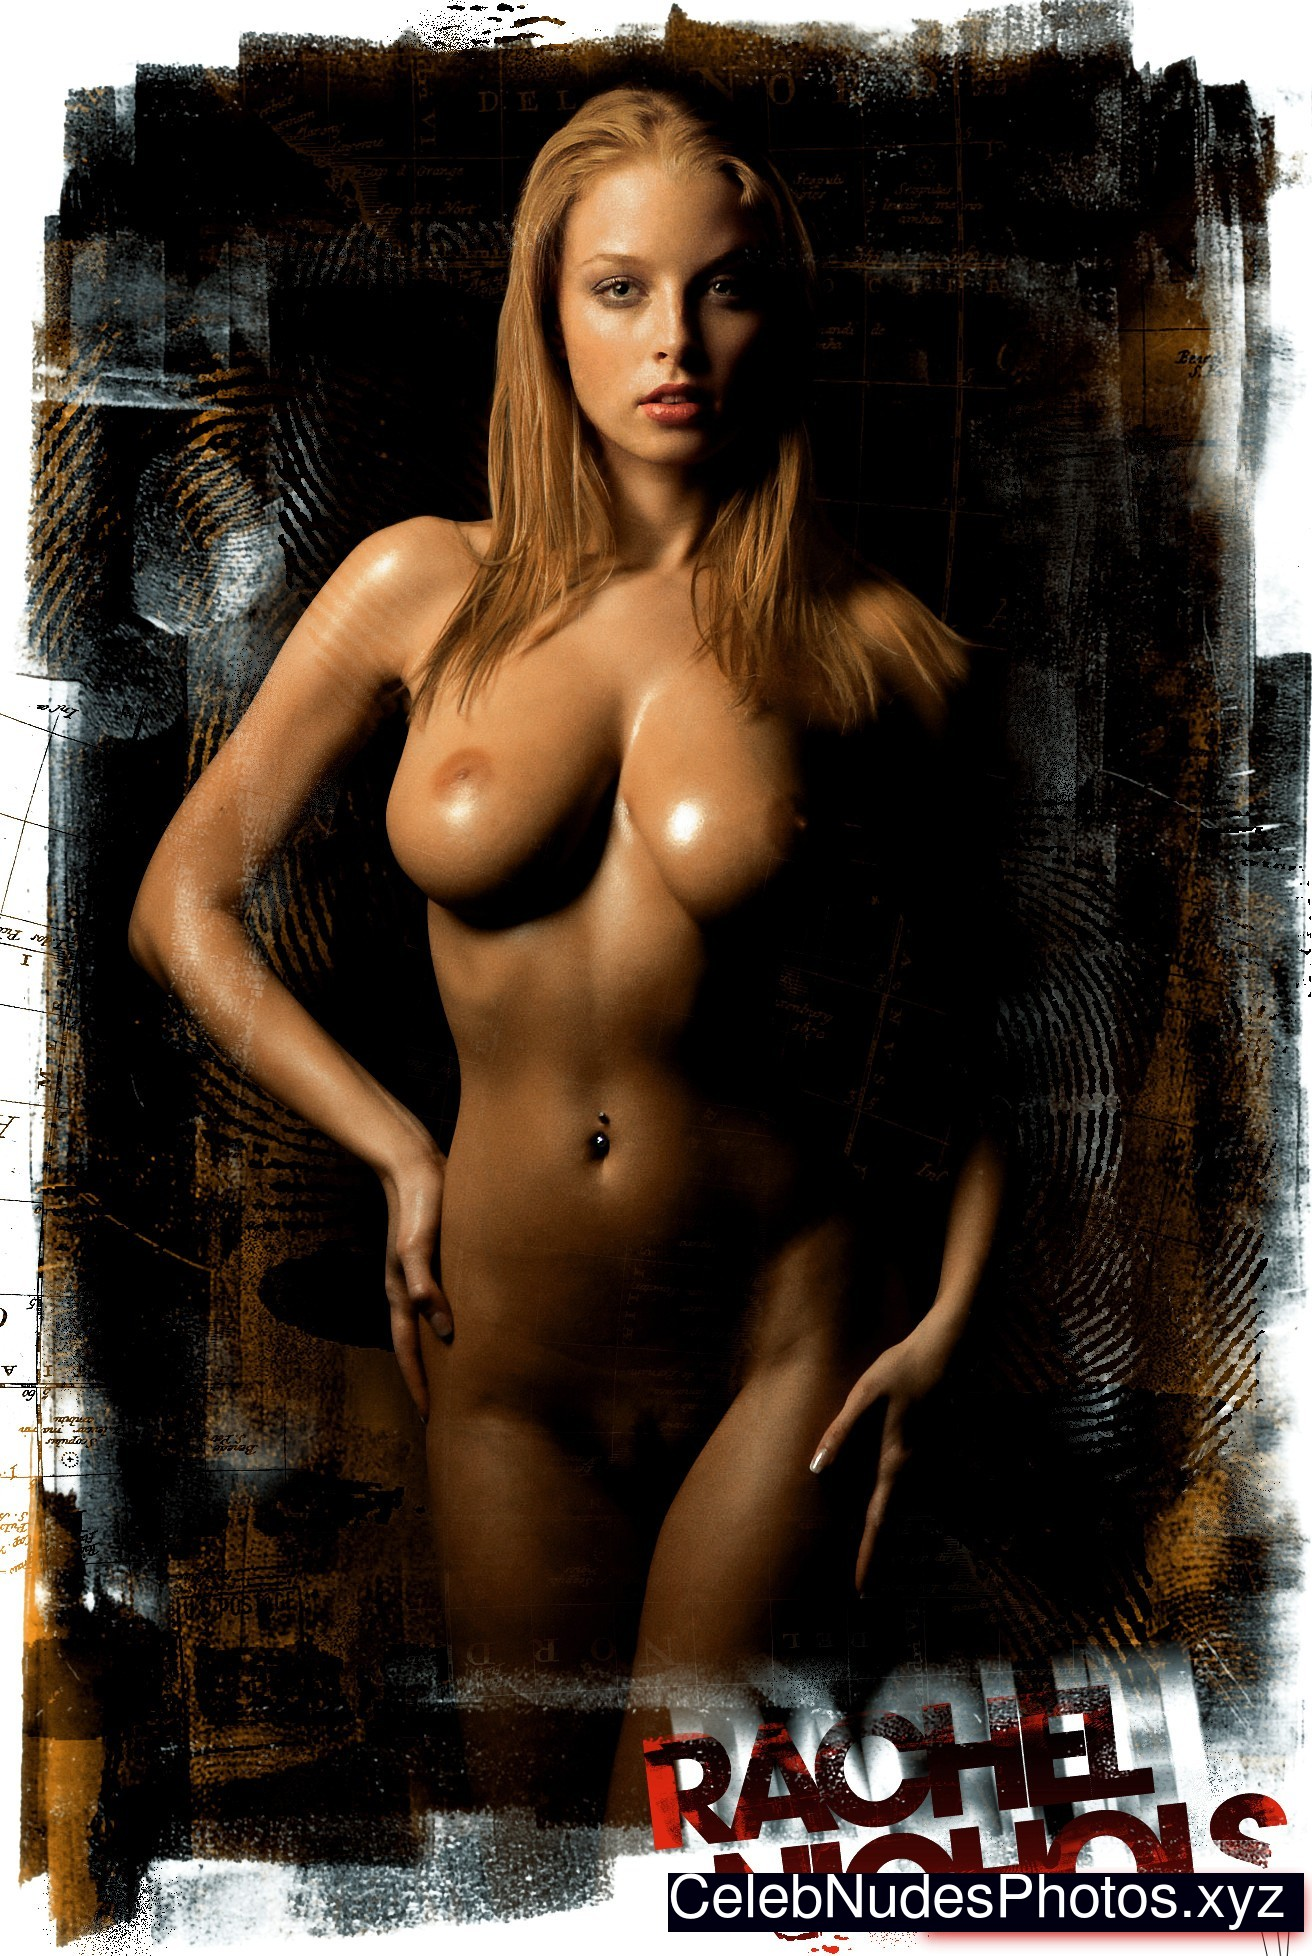 naked playboy girl in action with dildo